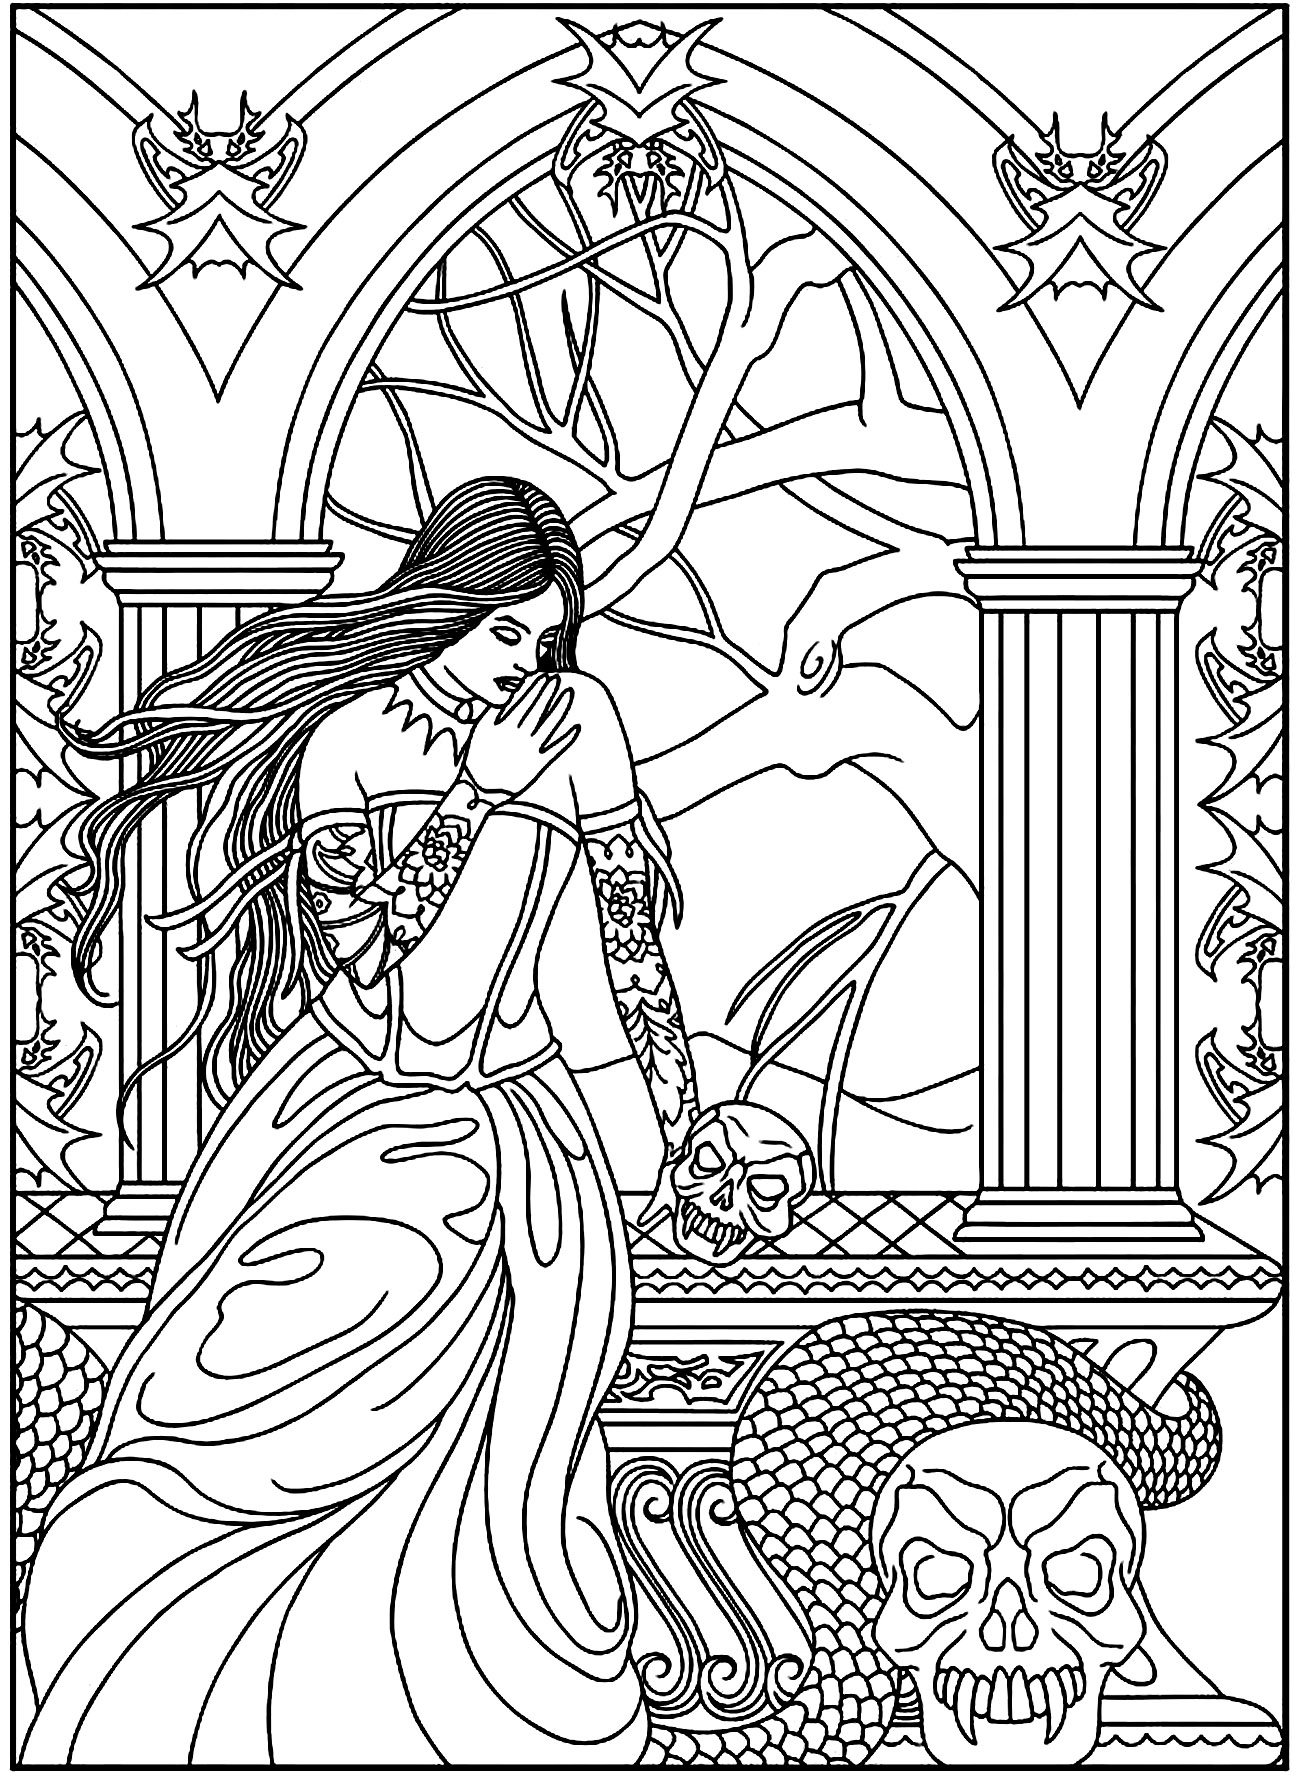 Fantasy woman skulls snake - Myths & legends Adult Coloring Pages